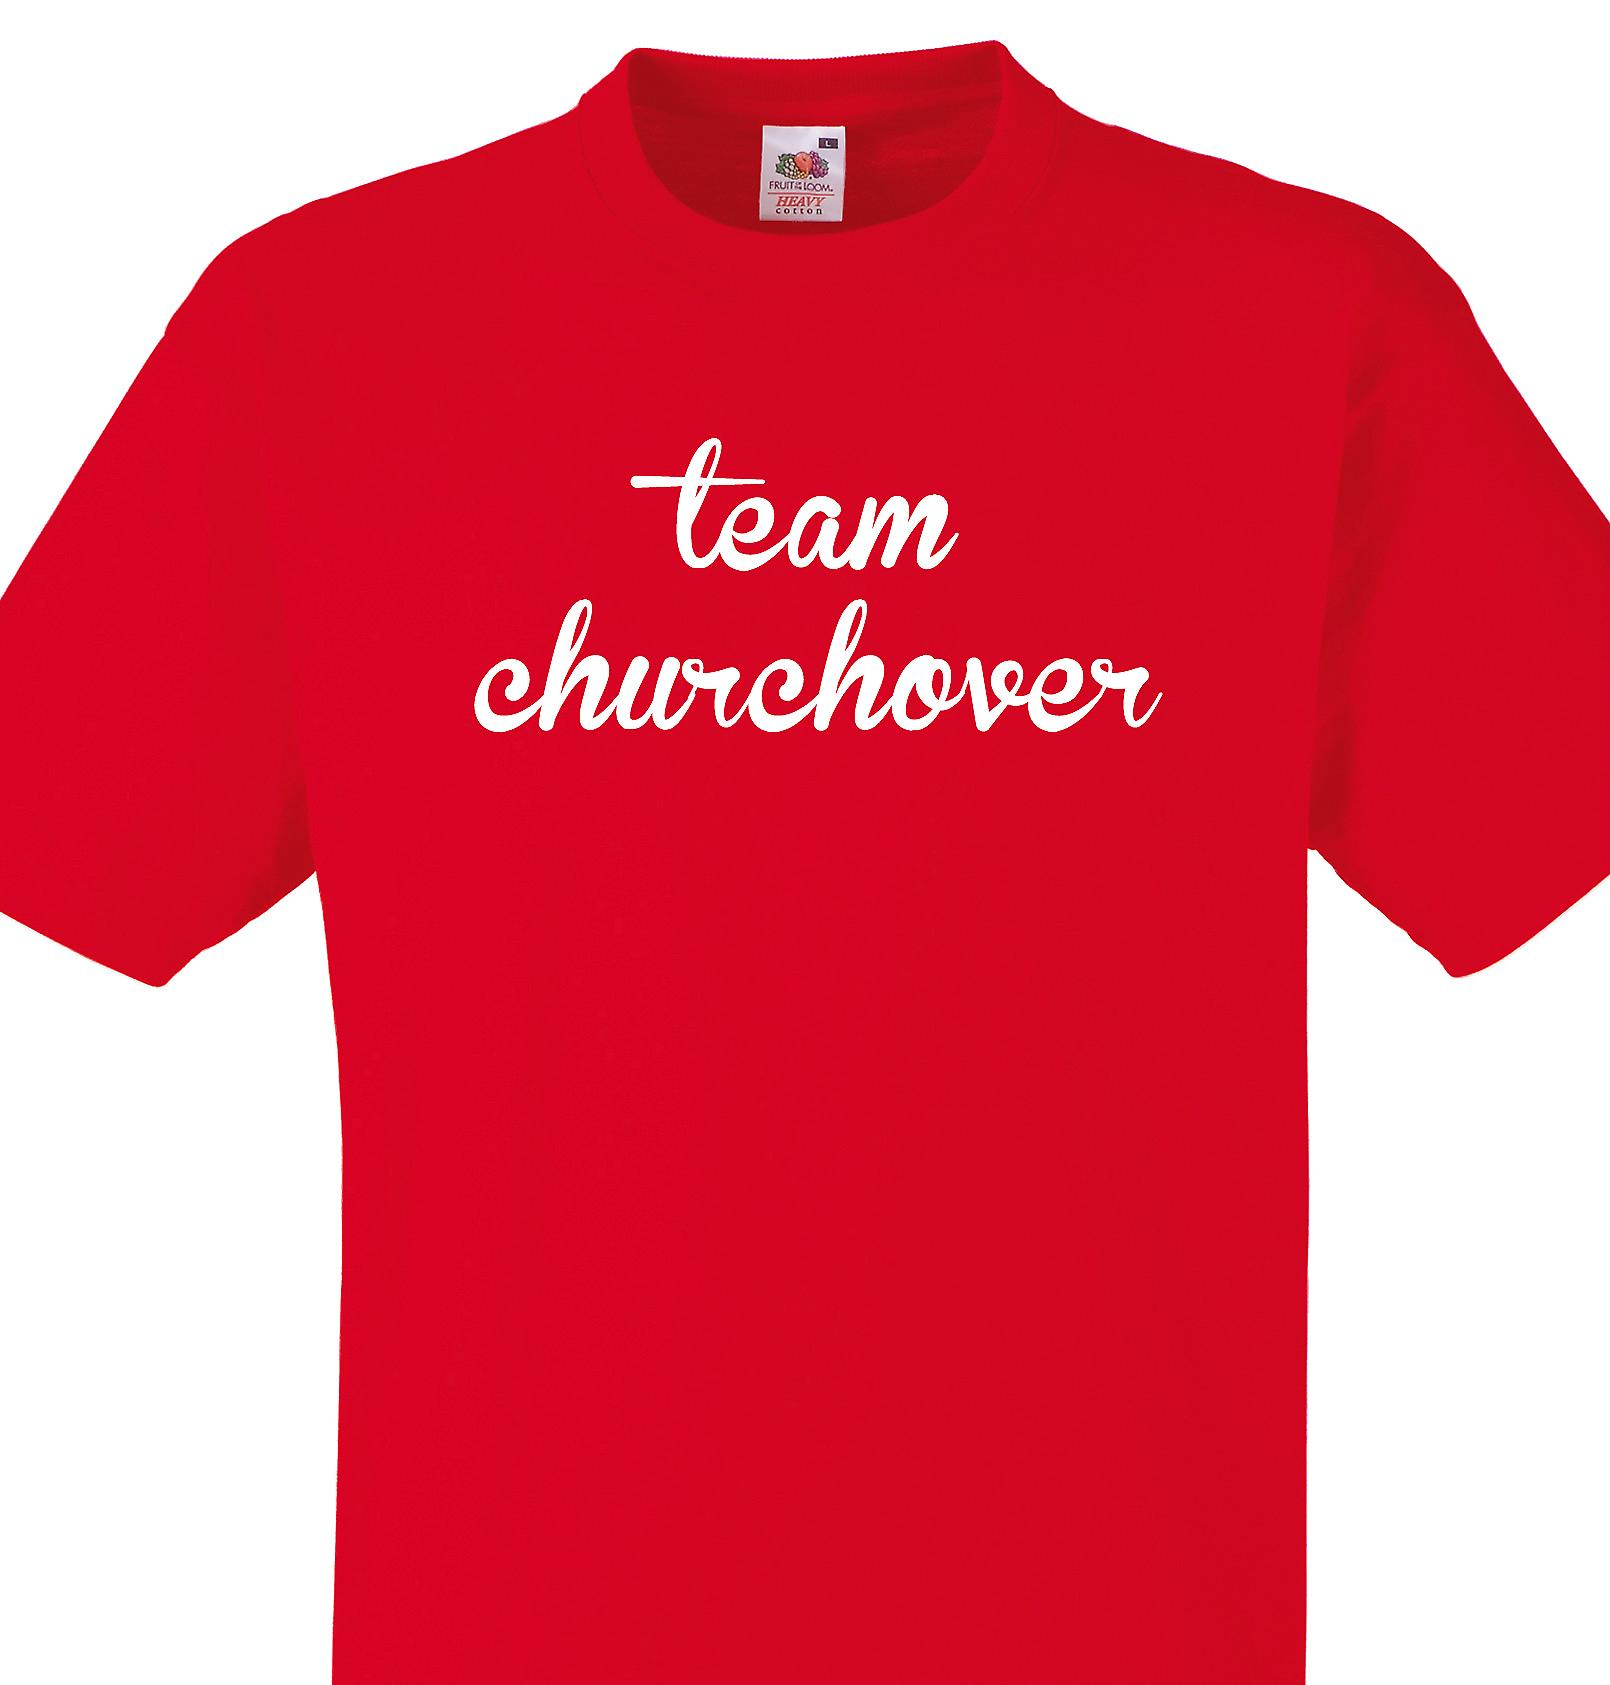 Team Churchover Red T shirt